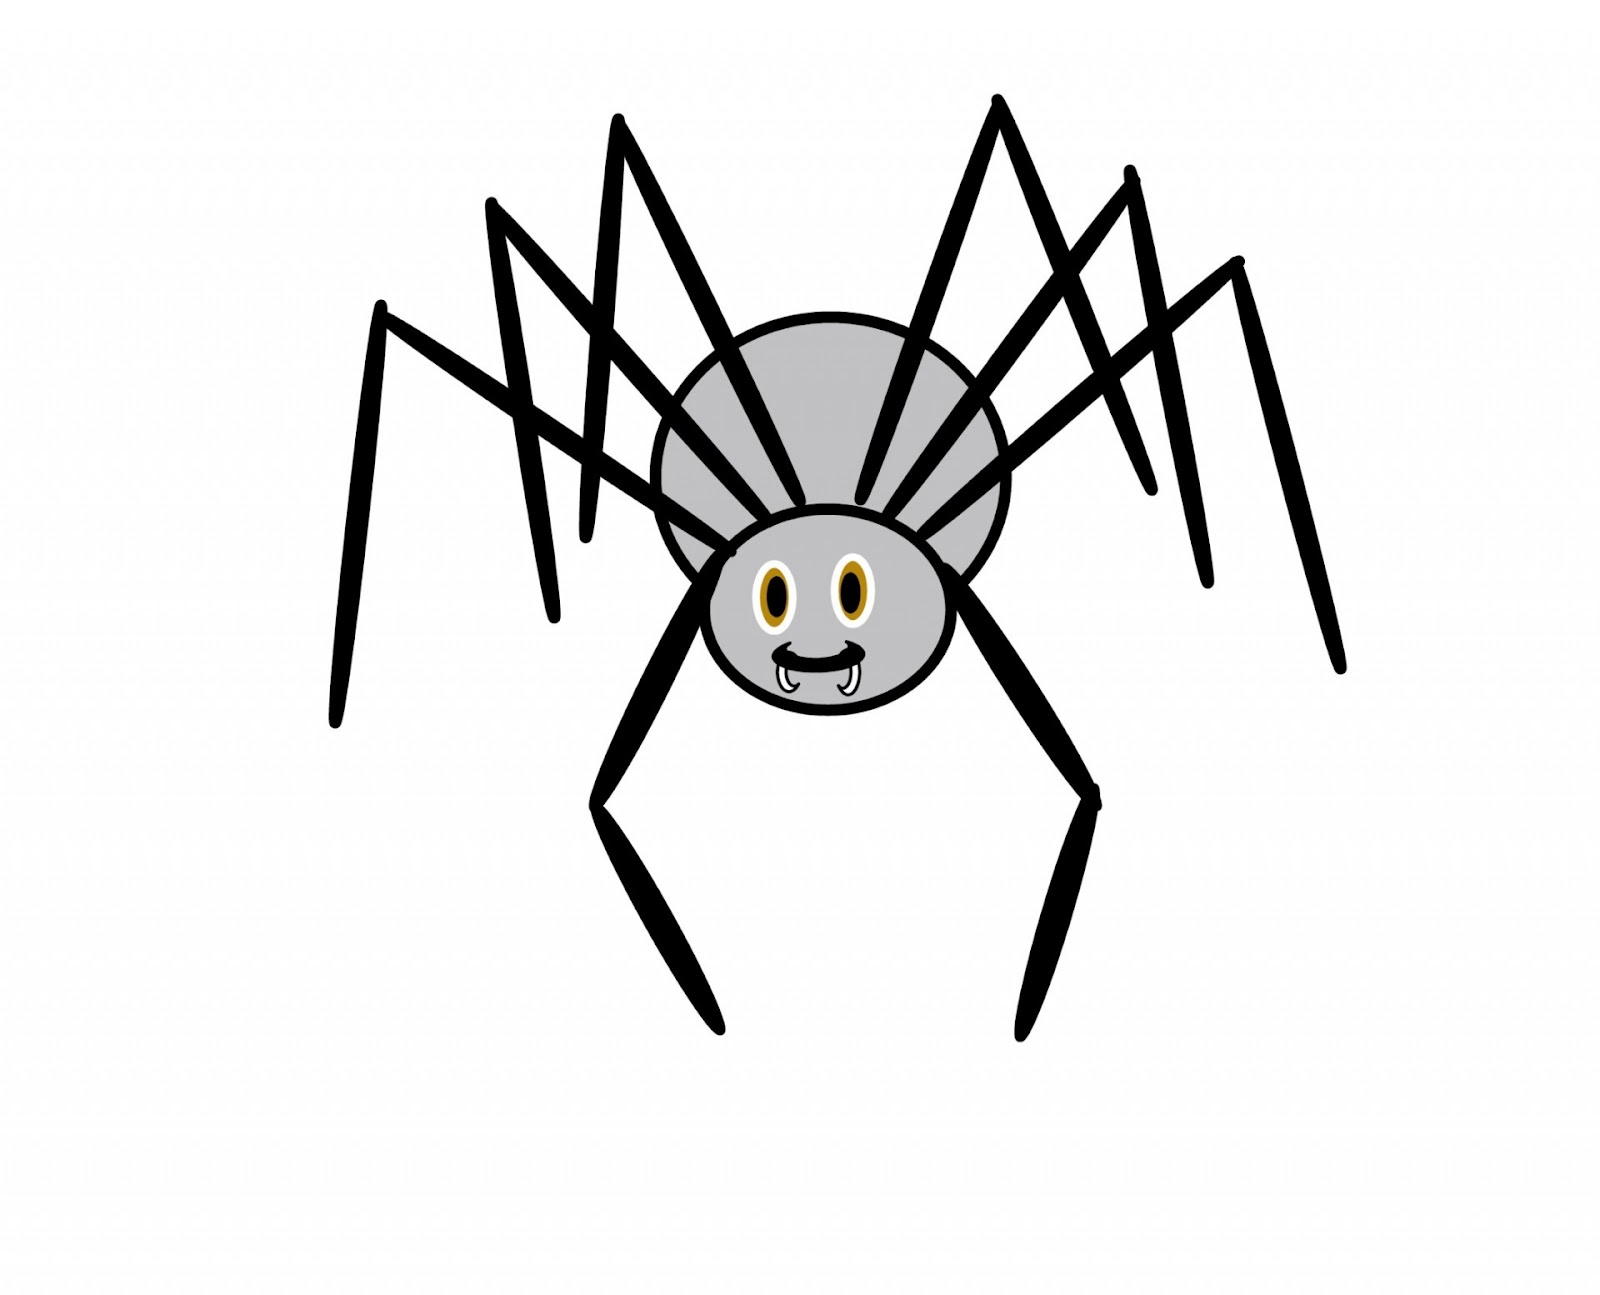 Clip Art Spider Free Stock Photo - Public Domain Pictures